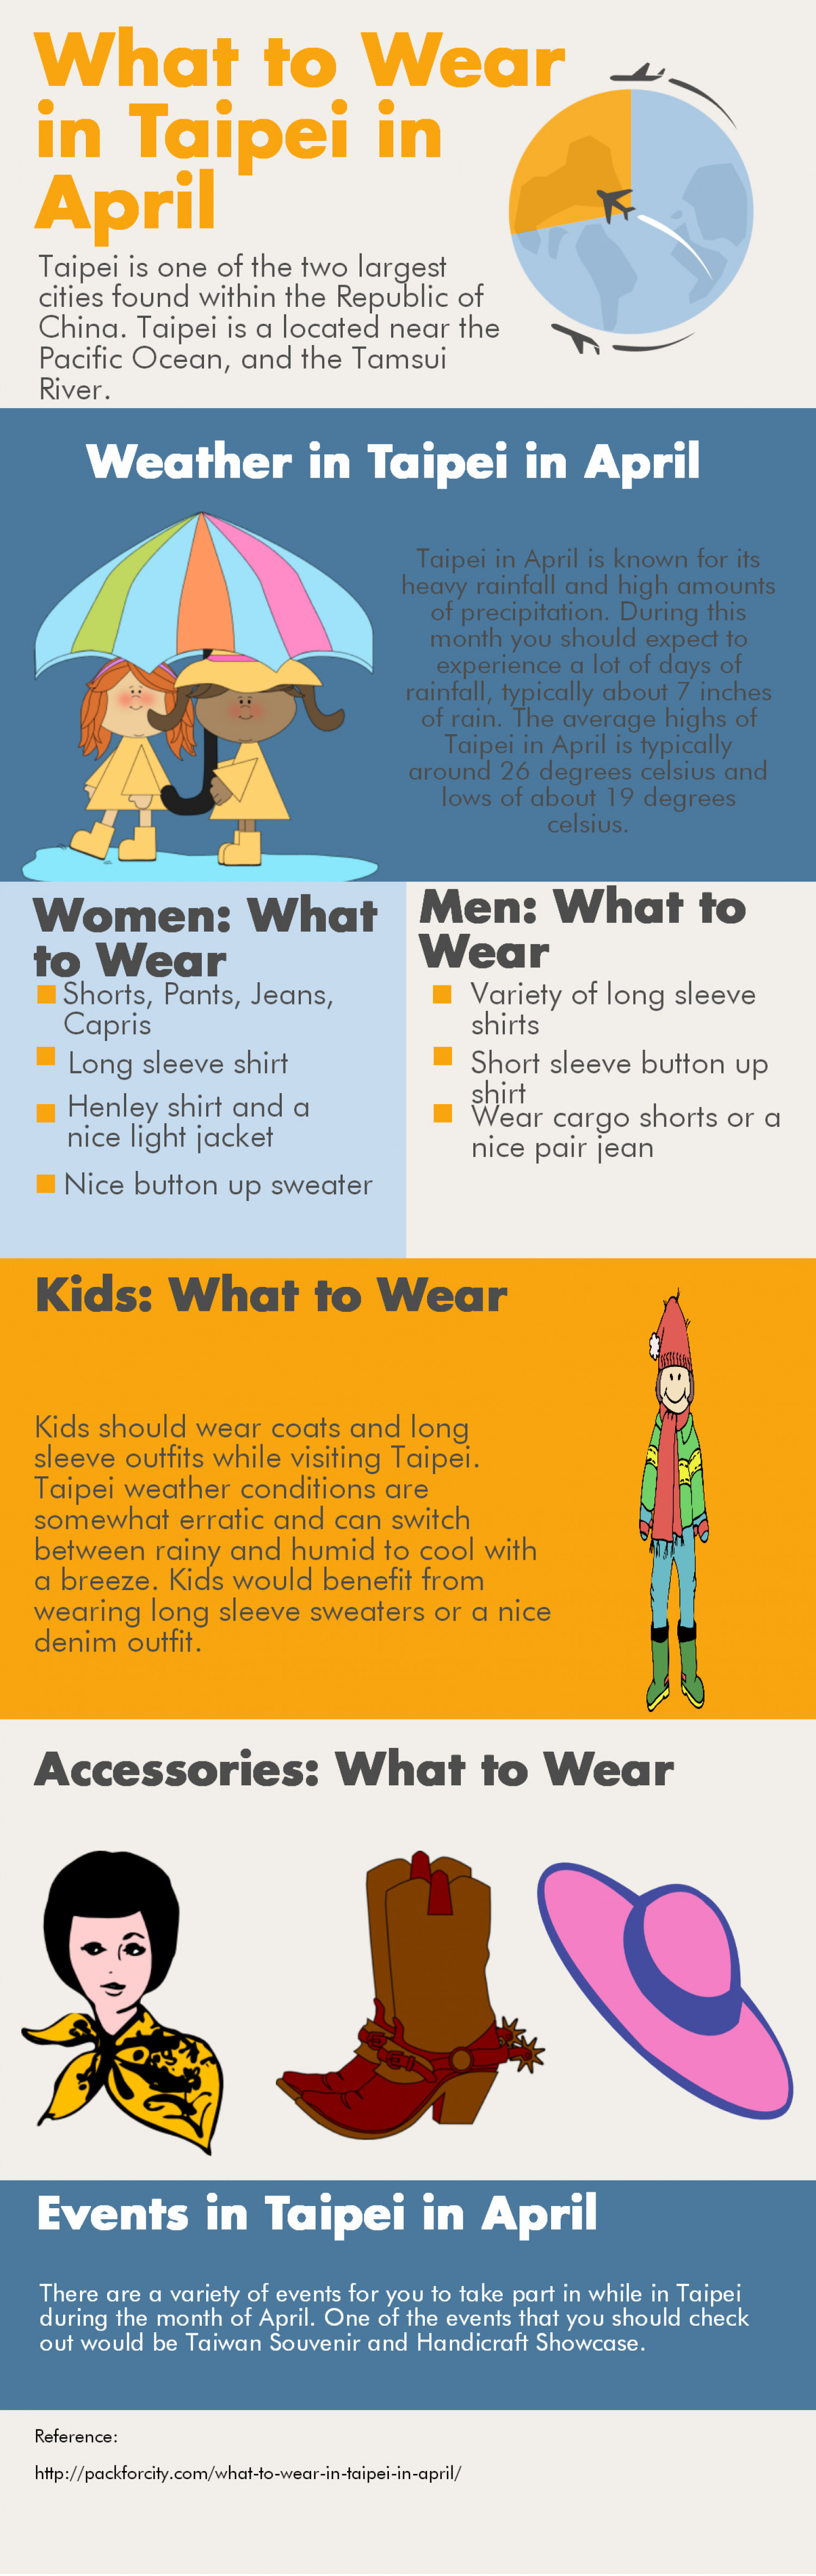 What to Wear in Taipei in April Infographic